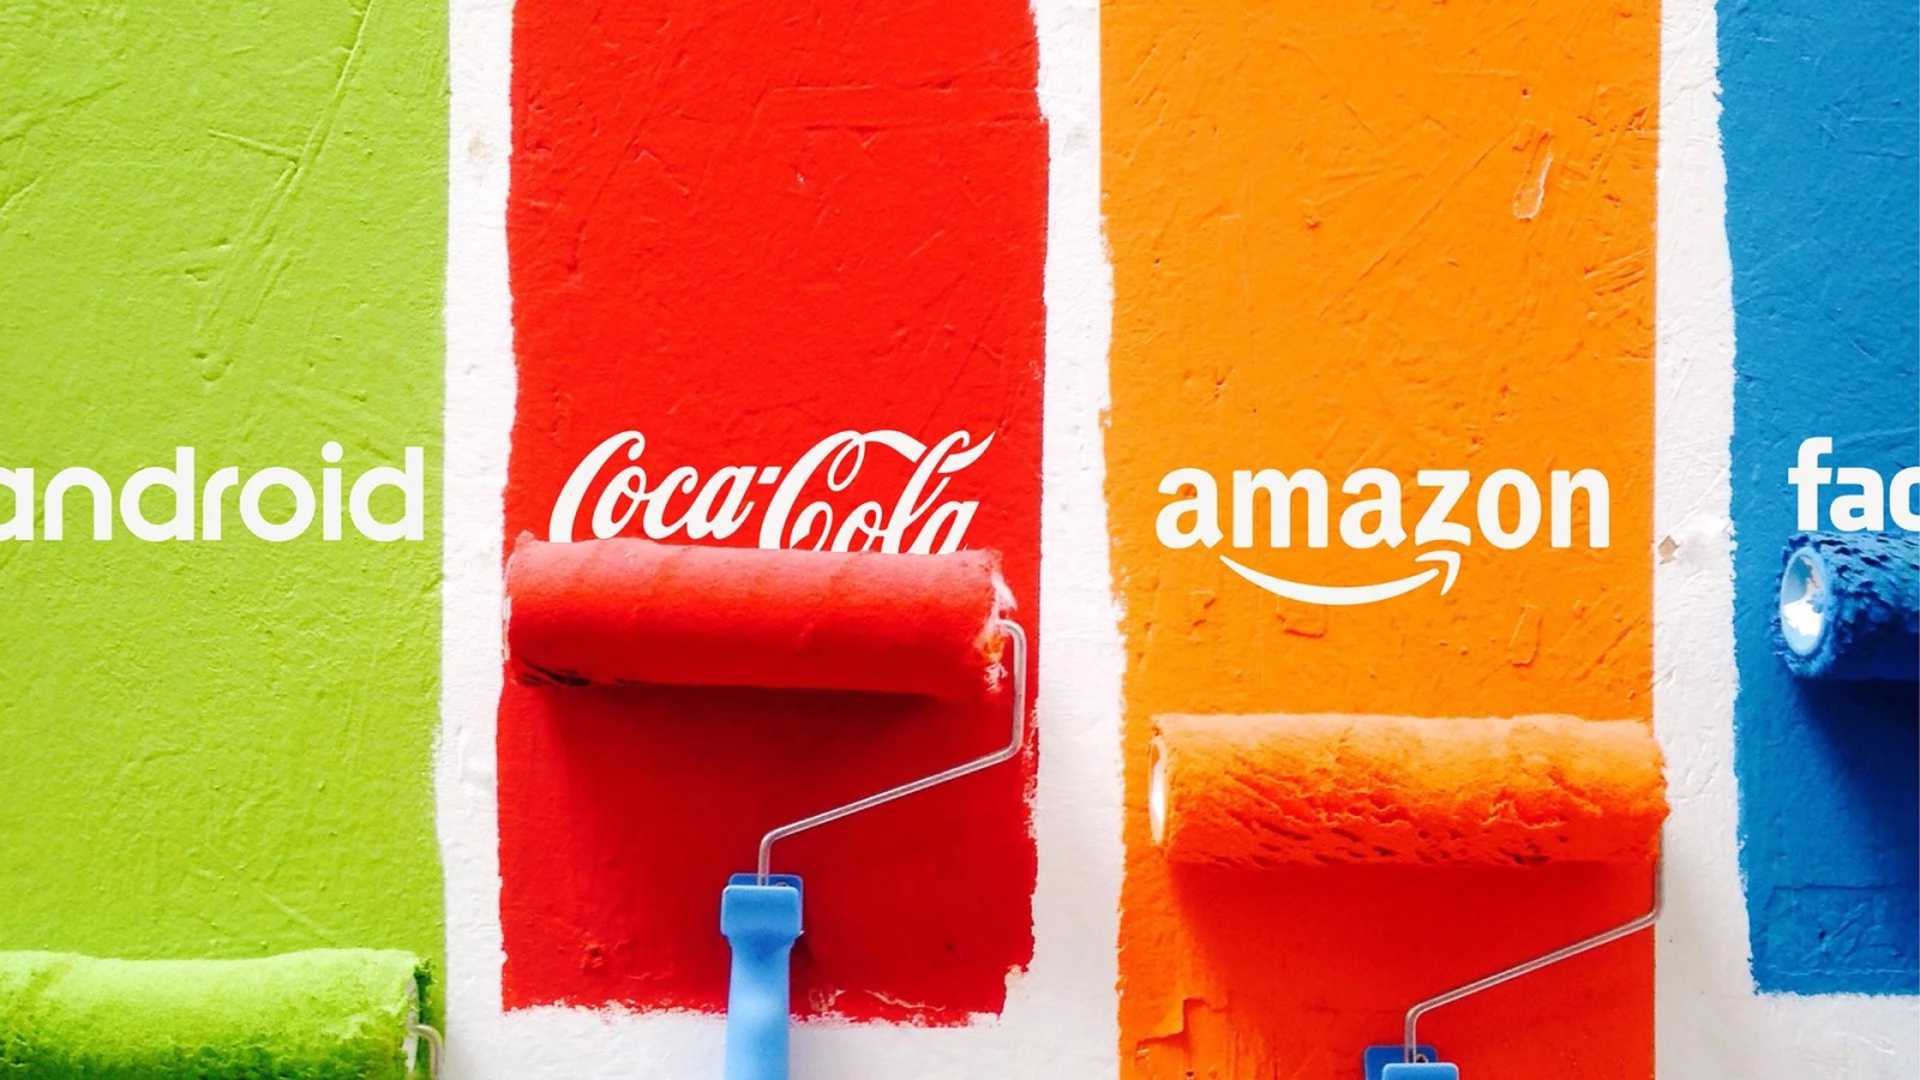 How Do Logos Attract Customers? image